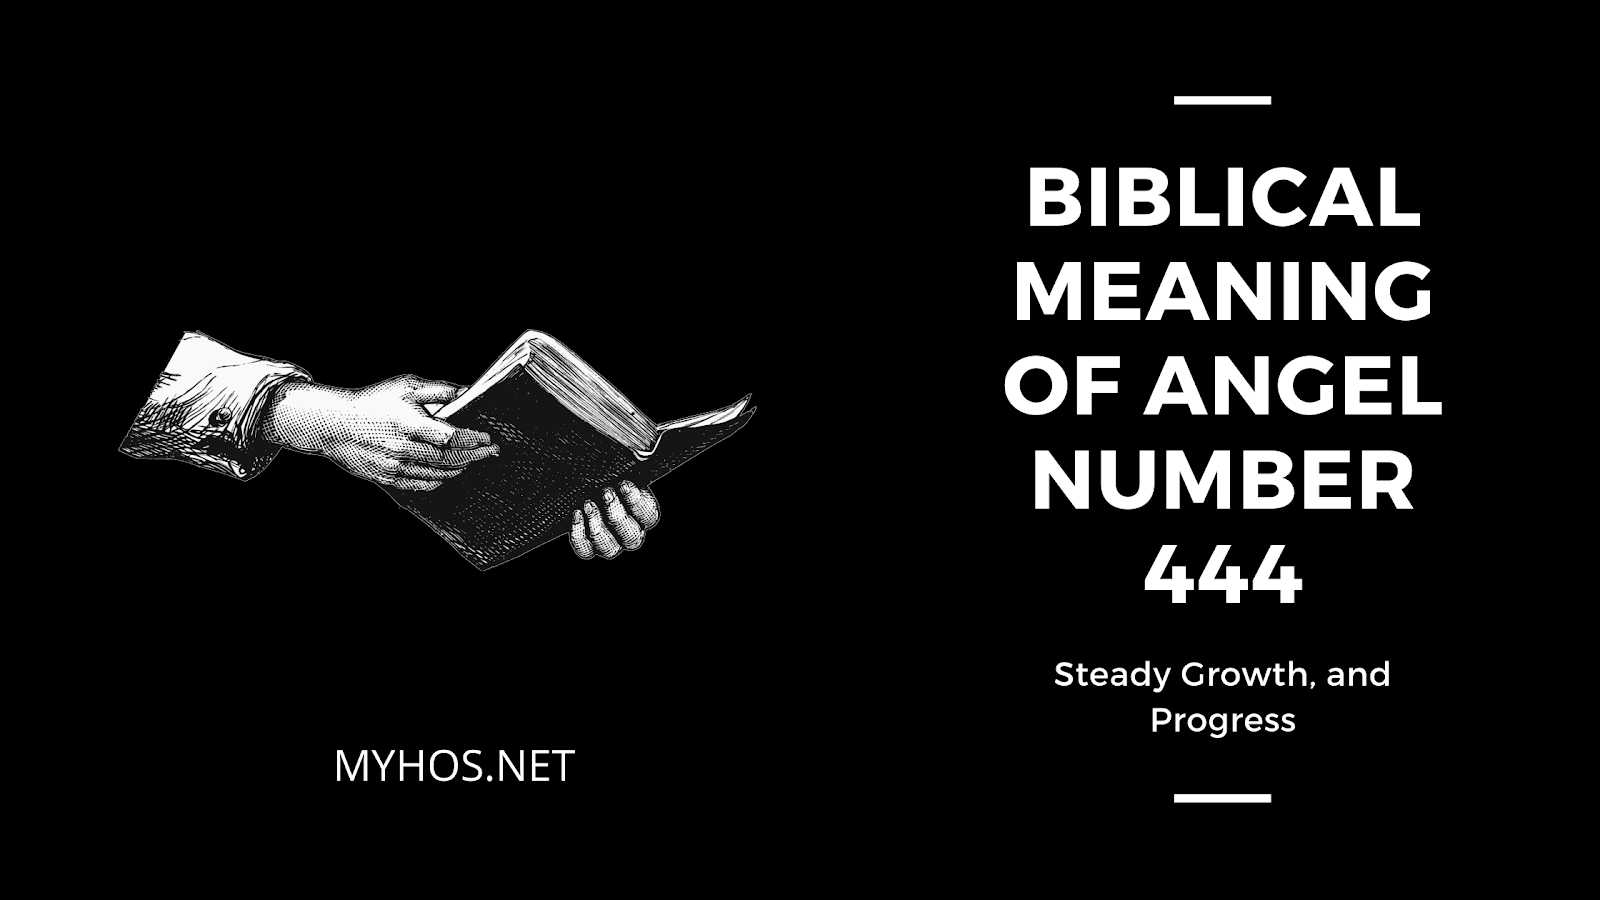 444 meaning bible